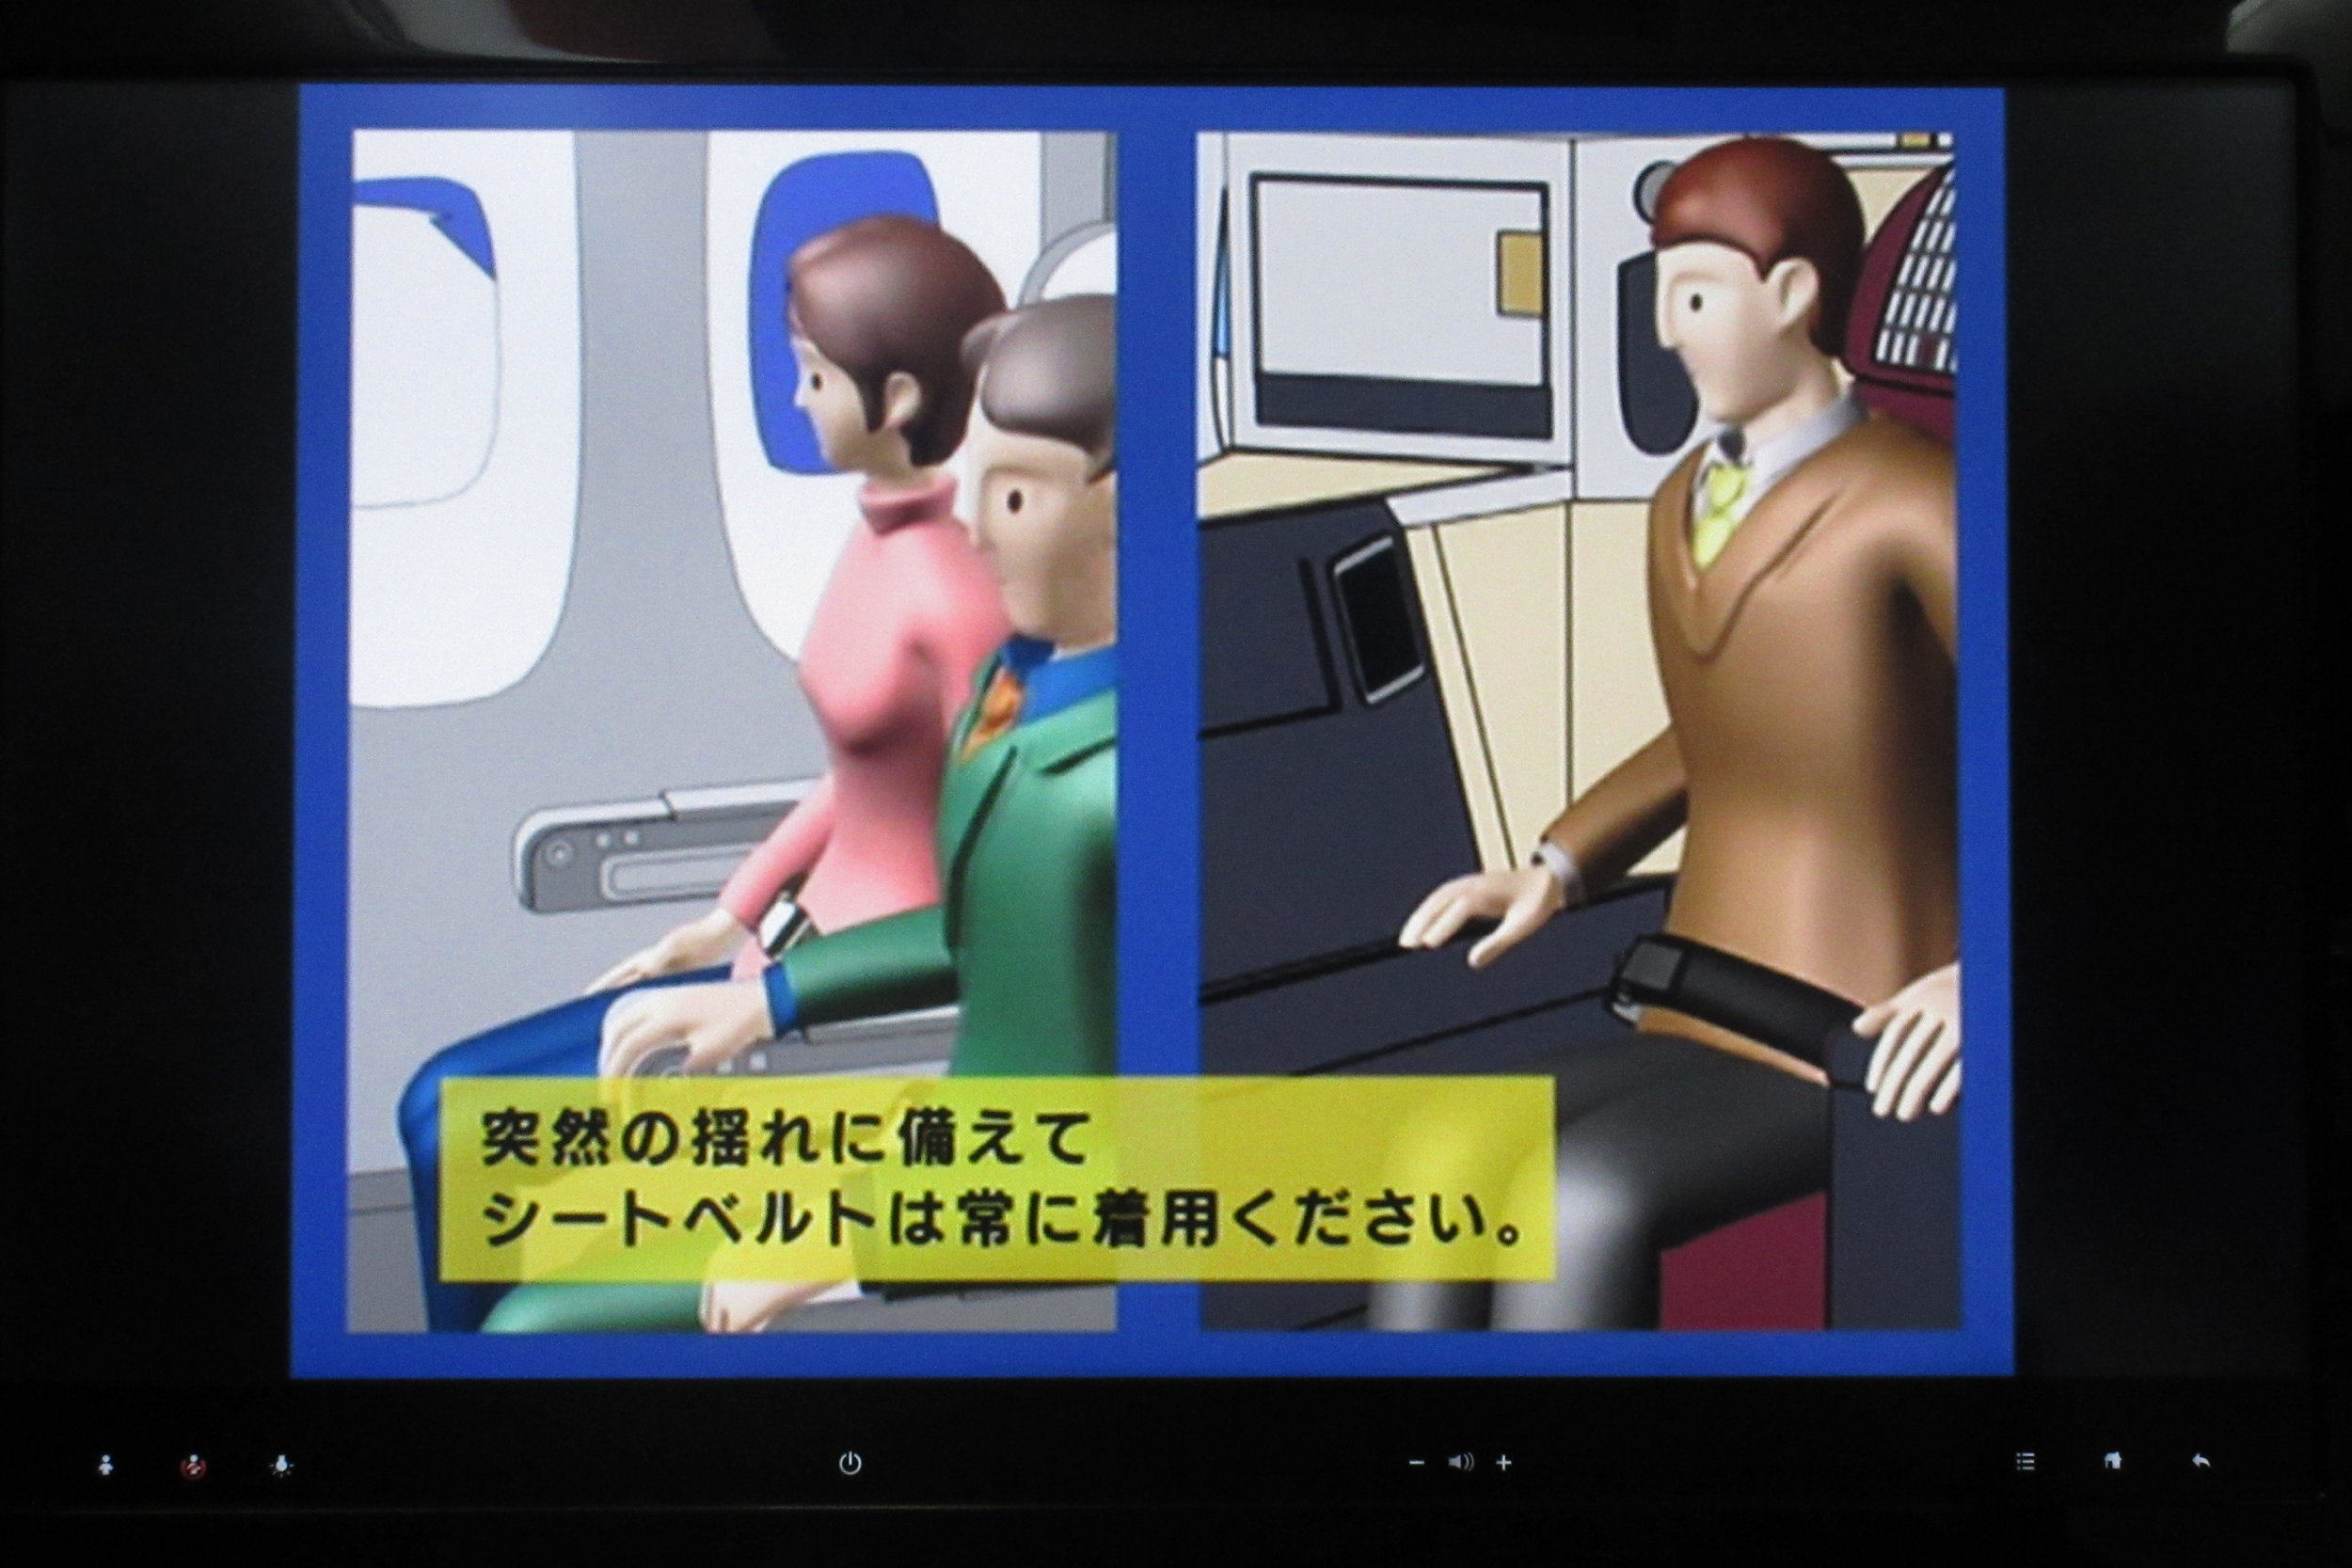 Japan Airlines business class – Safety video